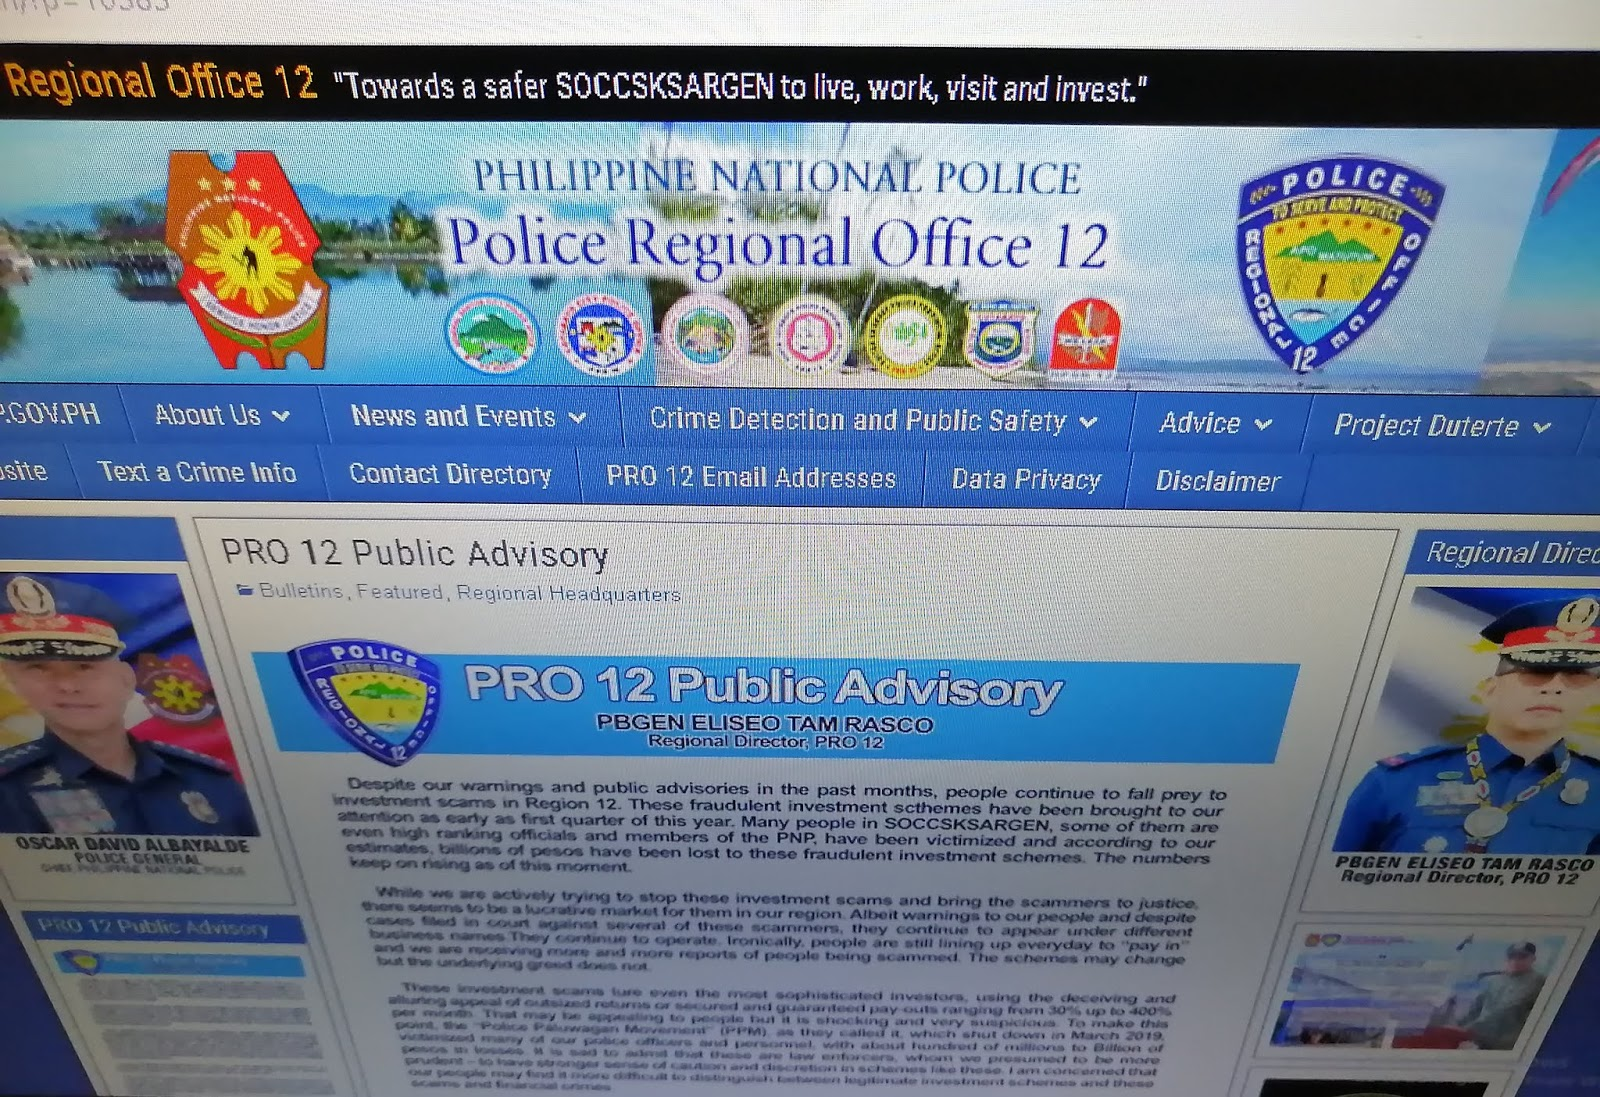 Police Regional Office 12 issues Public Advisory on Proliferation of Alleged Fraudulent Investment Schemes